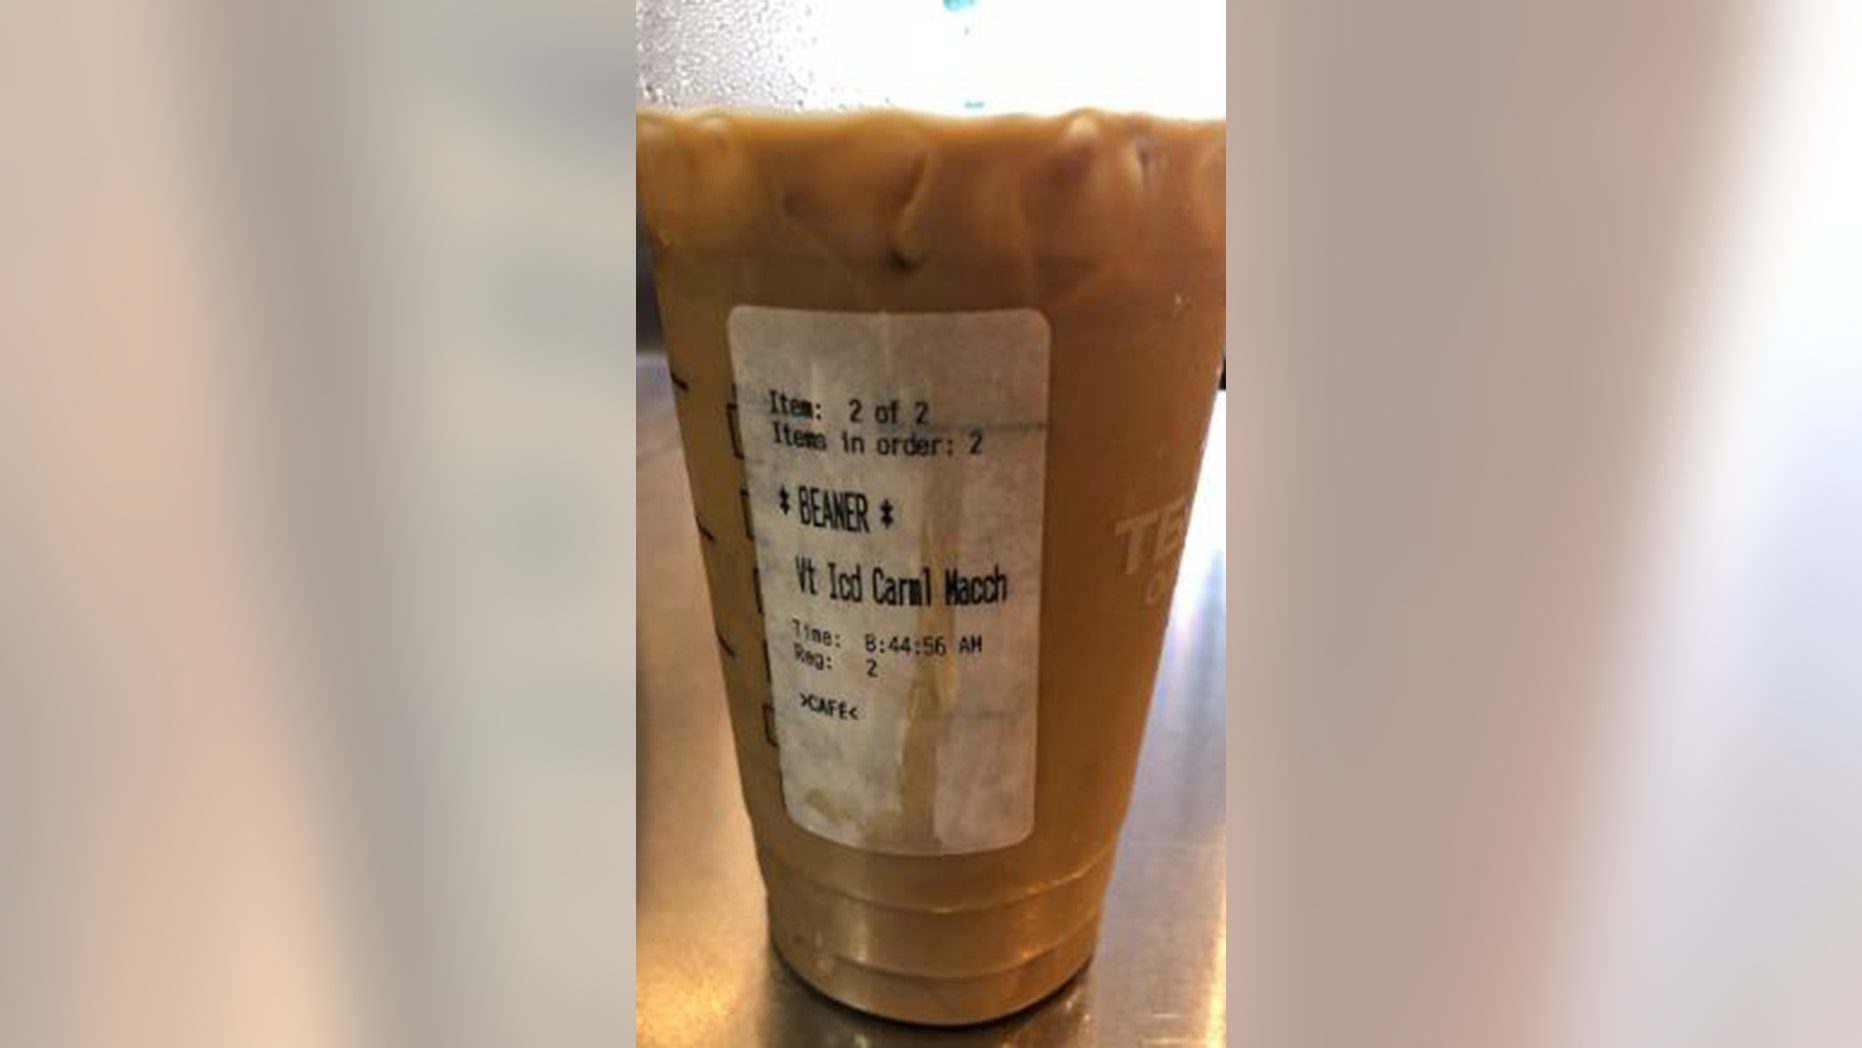 """This is not indicative of the type of experience we want our customers to have when they walk into our stores,"" Starbucks has stated in response to the incident."